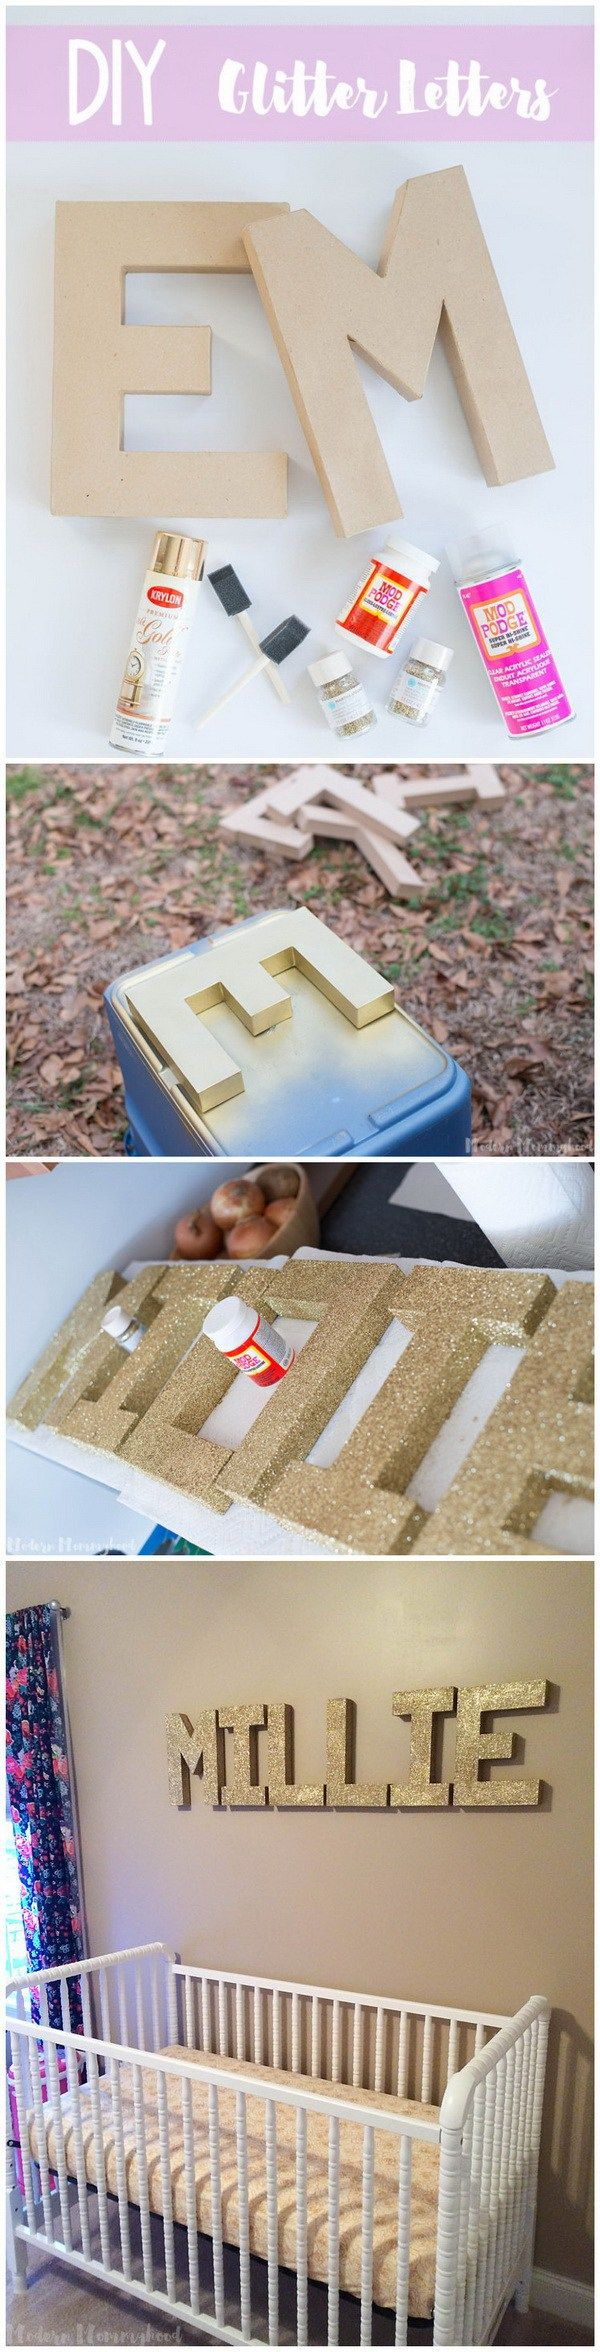 DIY Glitter Letters A quick way to